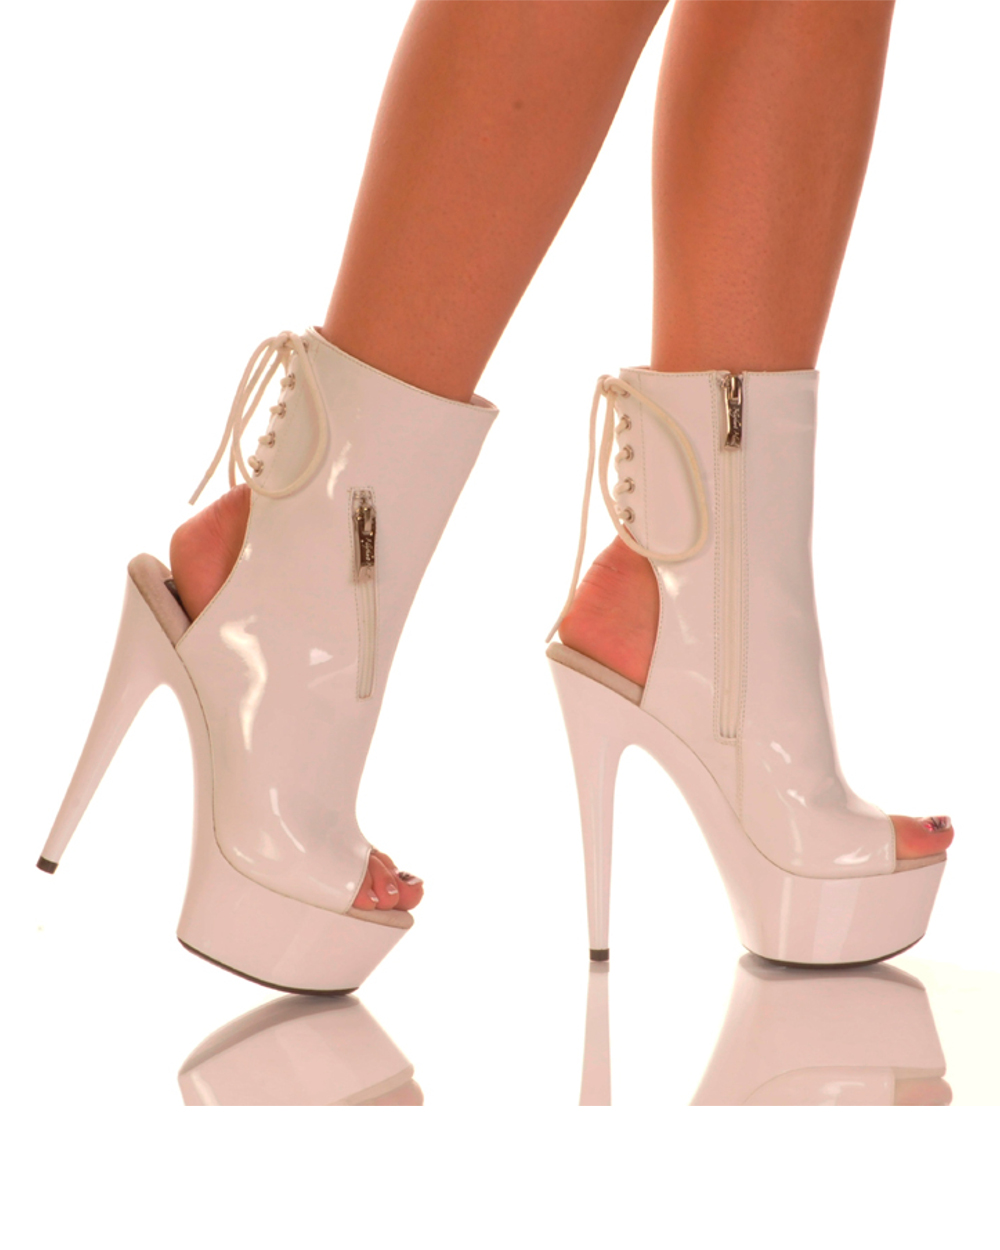 "Sexy Womens 6"" White Ankle Bootie With Functional Zipper Pocket Shoes"